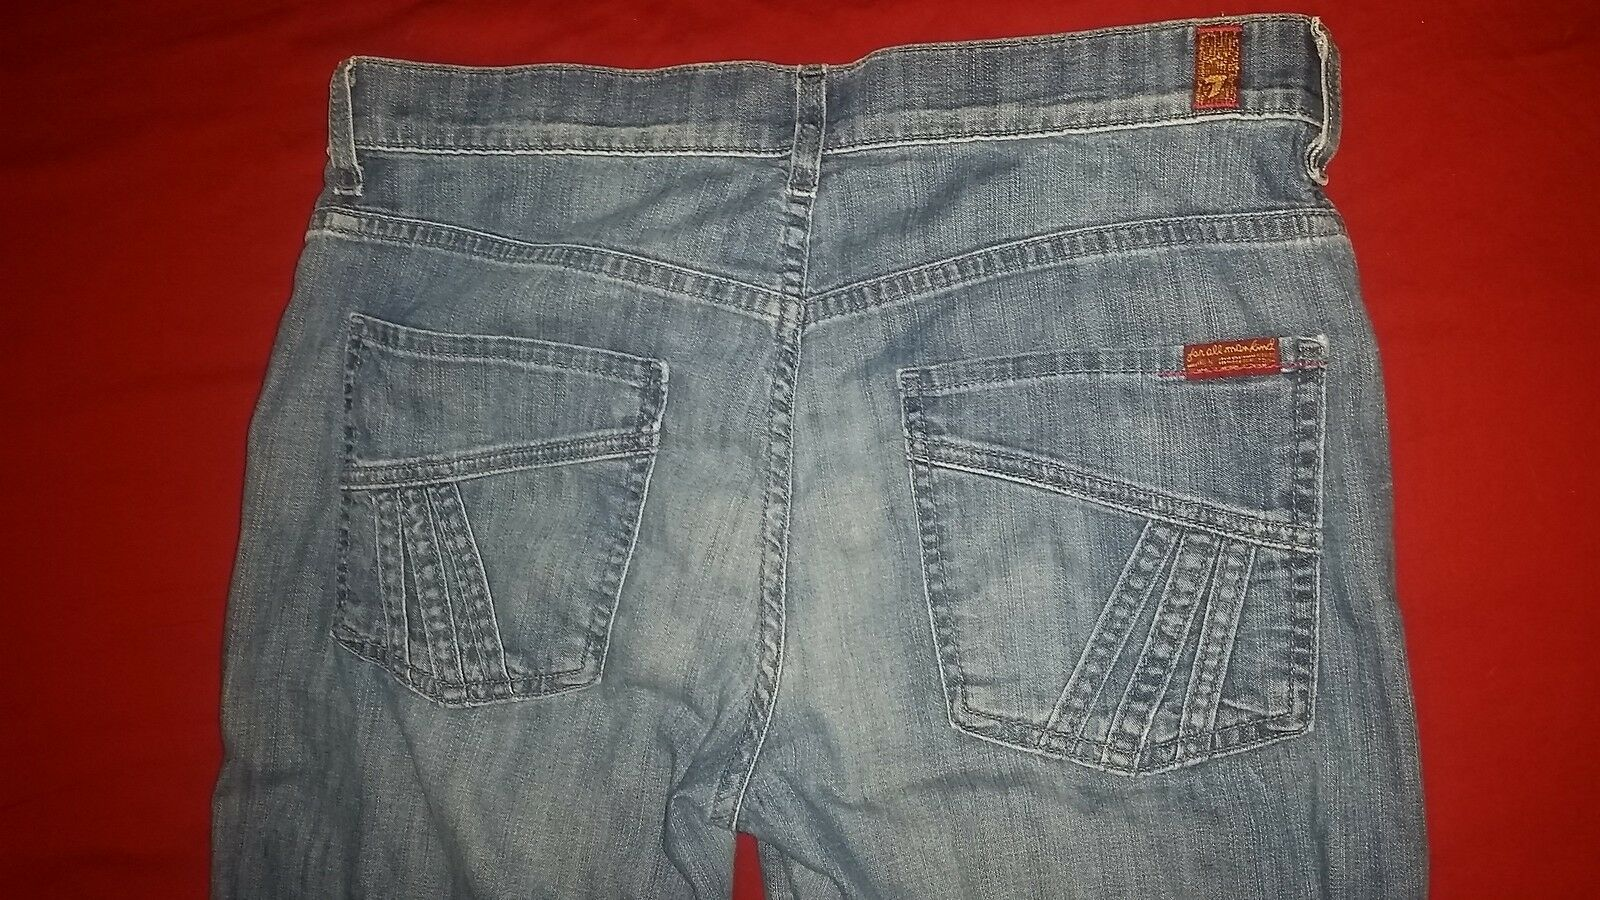 7 For All Mankind Flare Match St. Martin Women's Jeans size 31, inseam 31